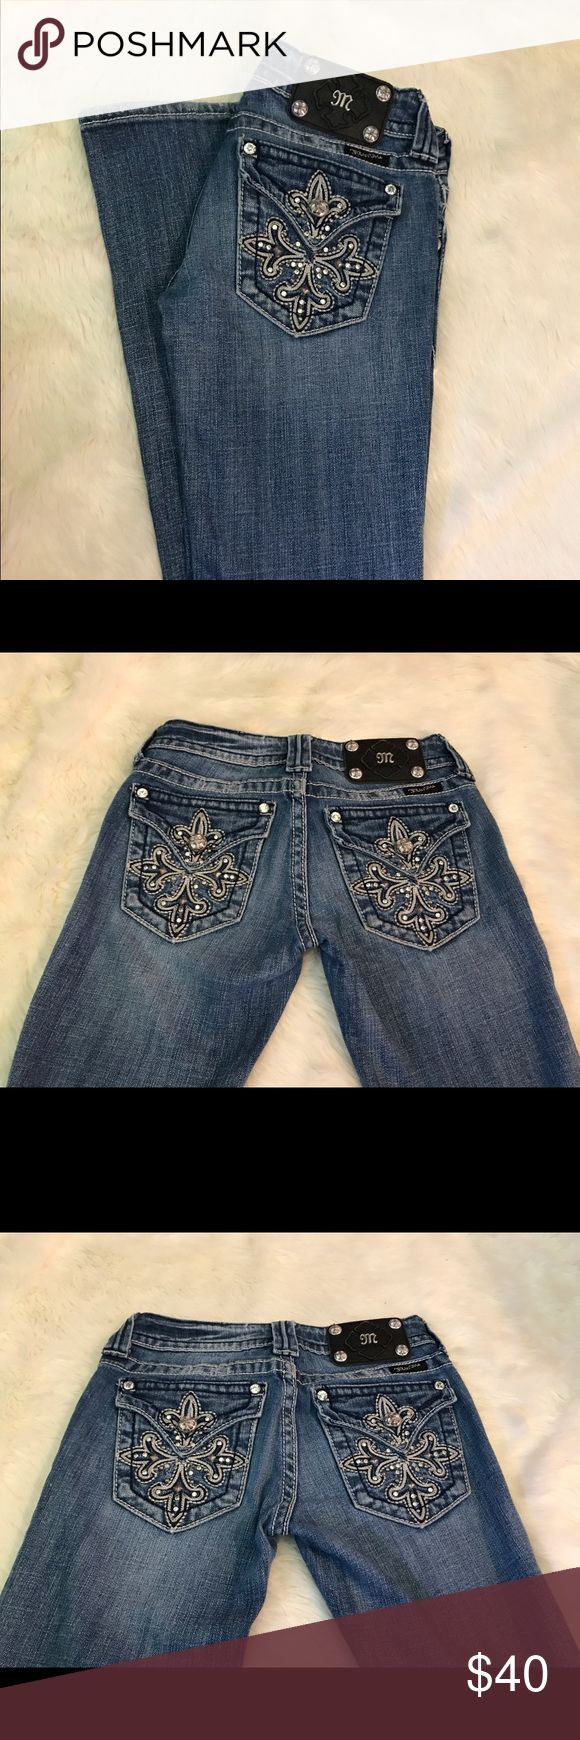 Miss Me Jeans Cute Light Wash Jeans- Missing one stone one the back pocket. Good Condition other than that Miss Me Jeans Boot Cut